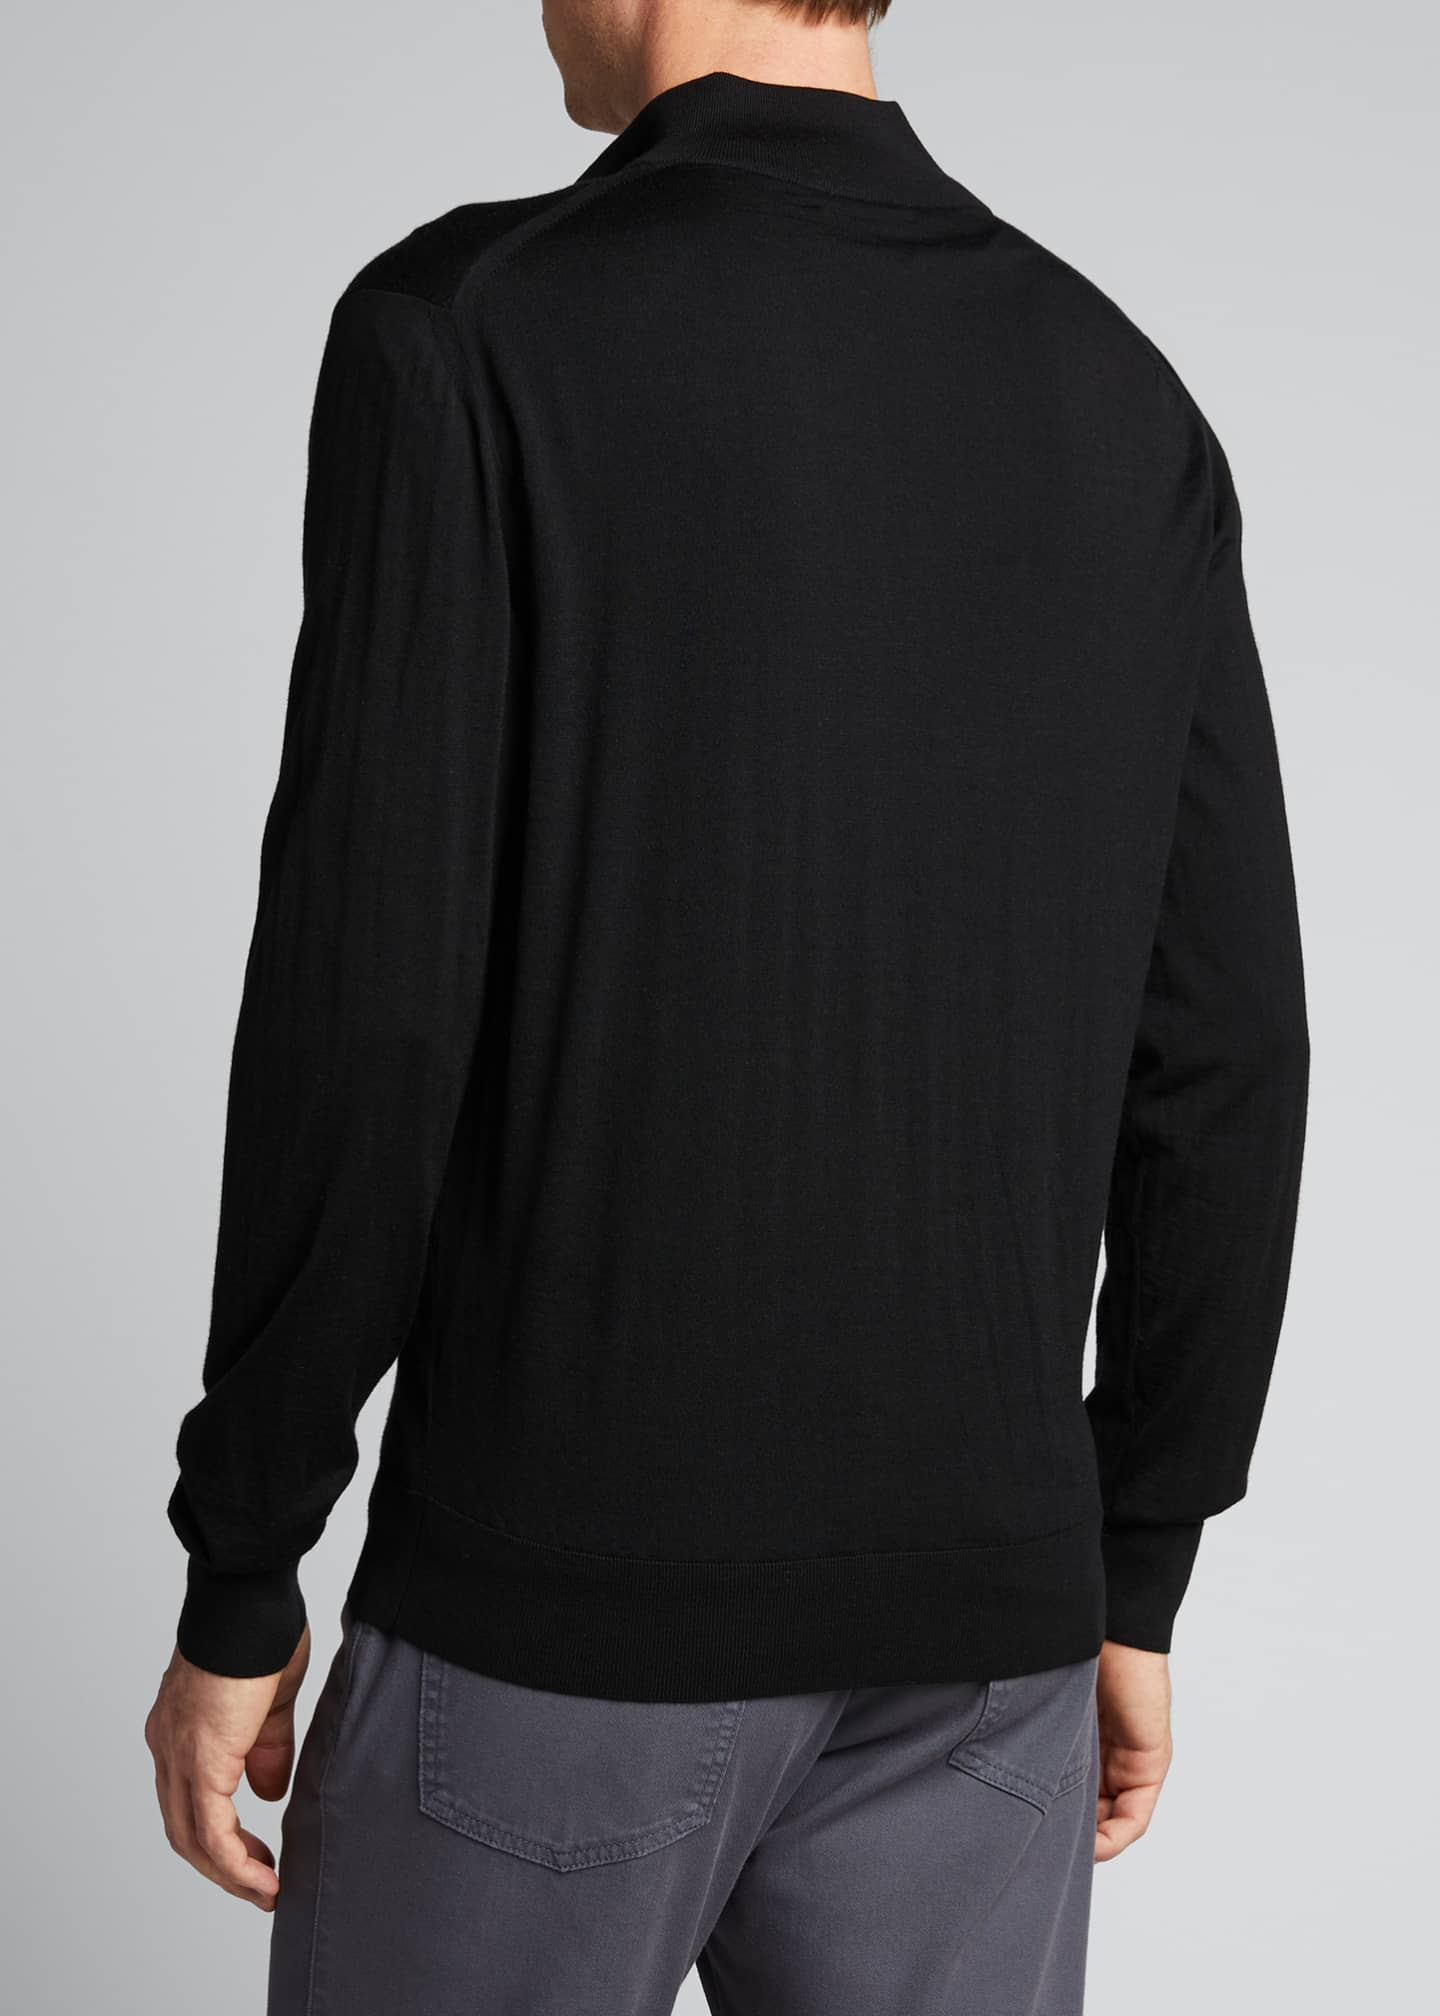 Image 2 of 5: Men's Solid Wool Zip-Front Sweater